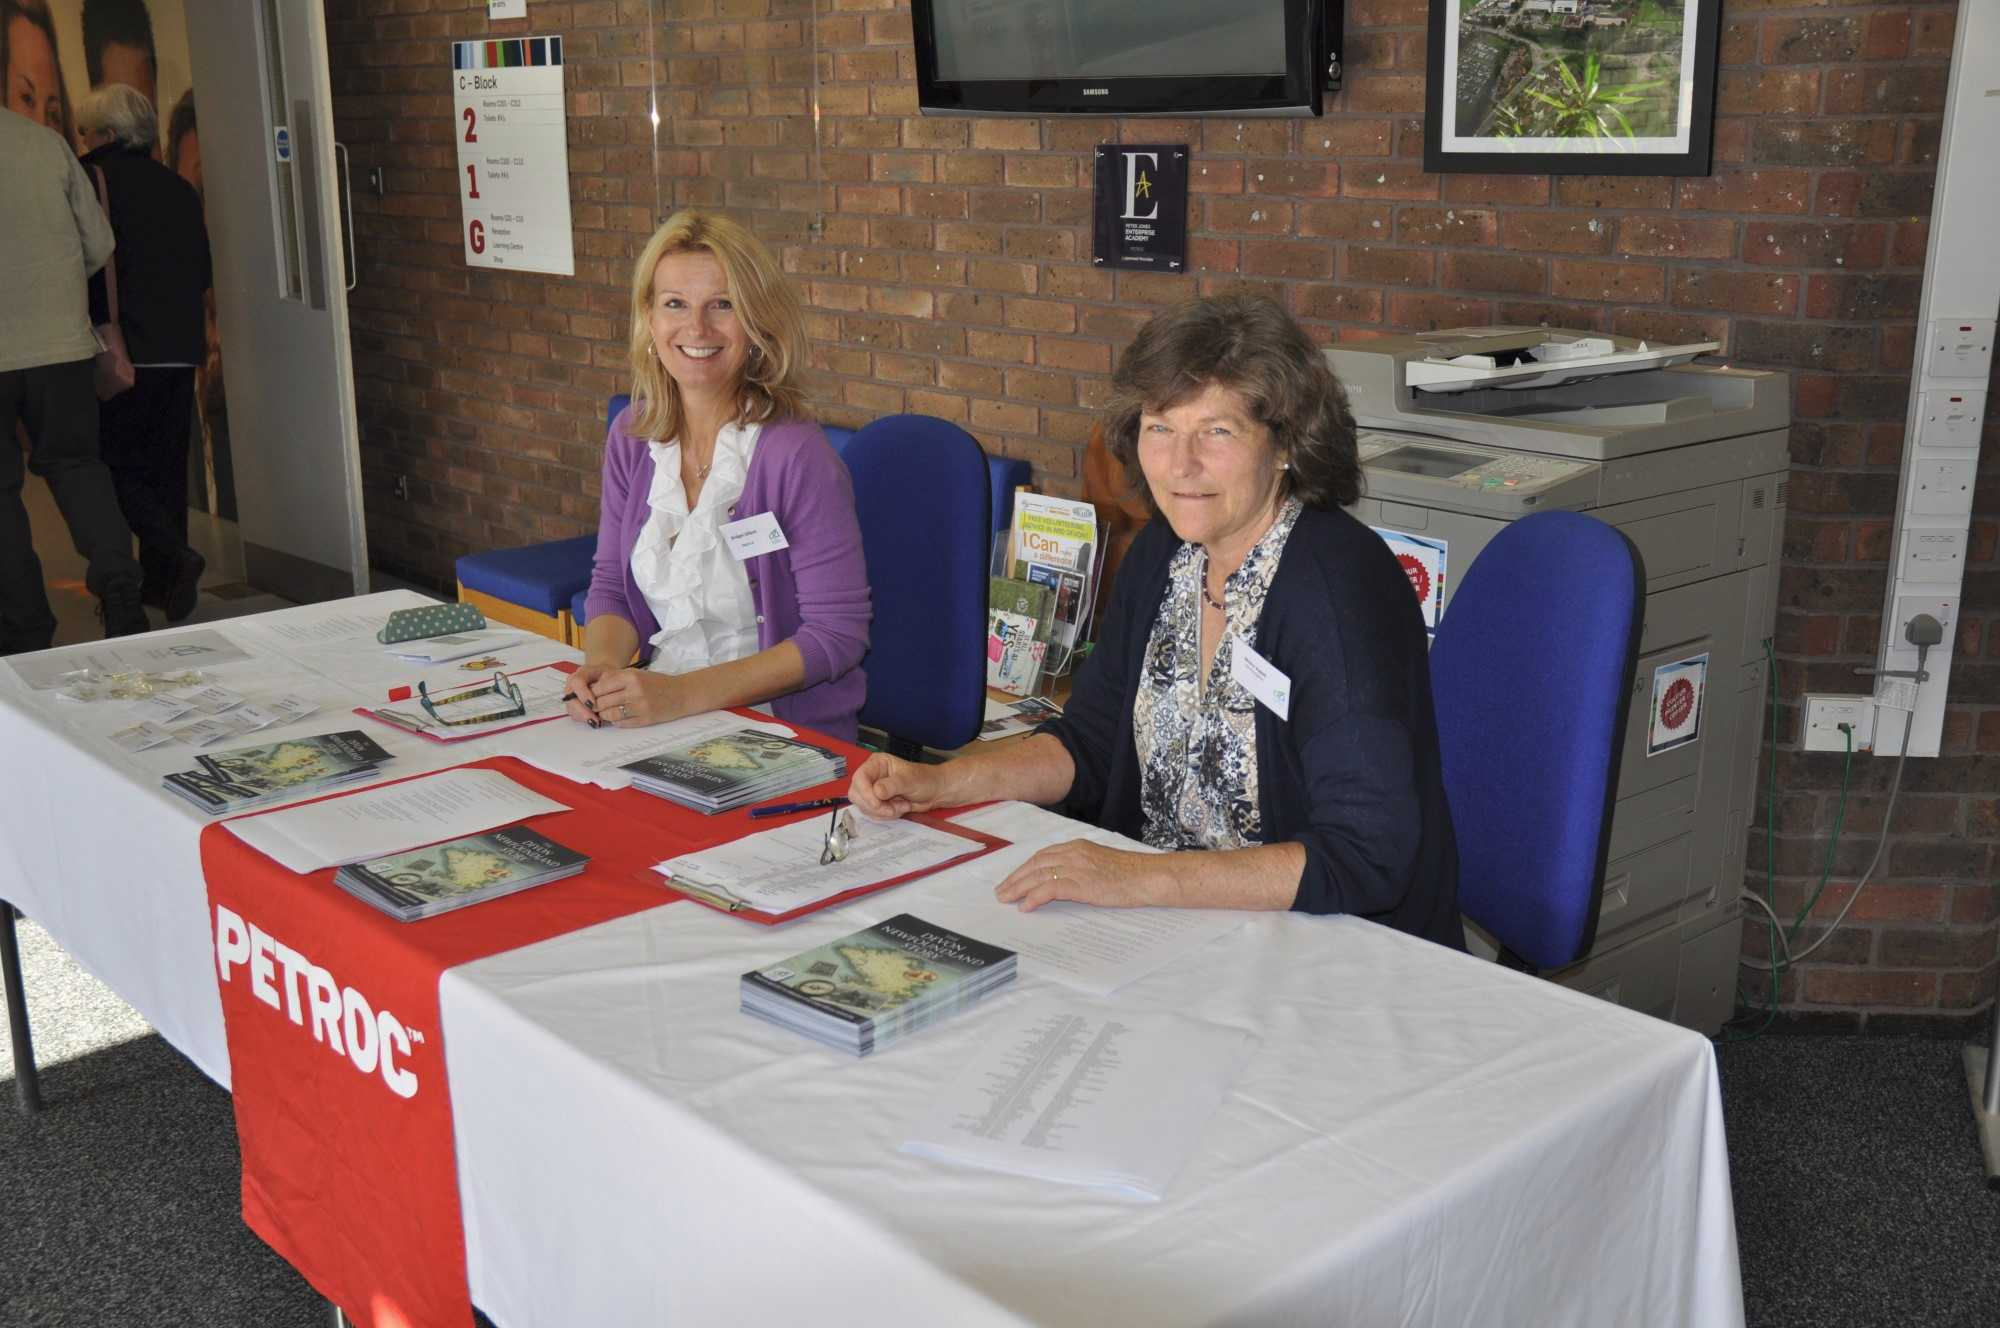 Dr Bridget Gillard (left) and Mrs Moira Aylett (right) at the reception desk